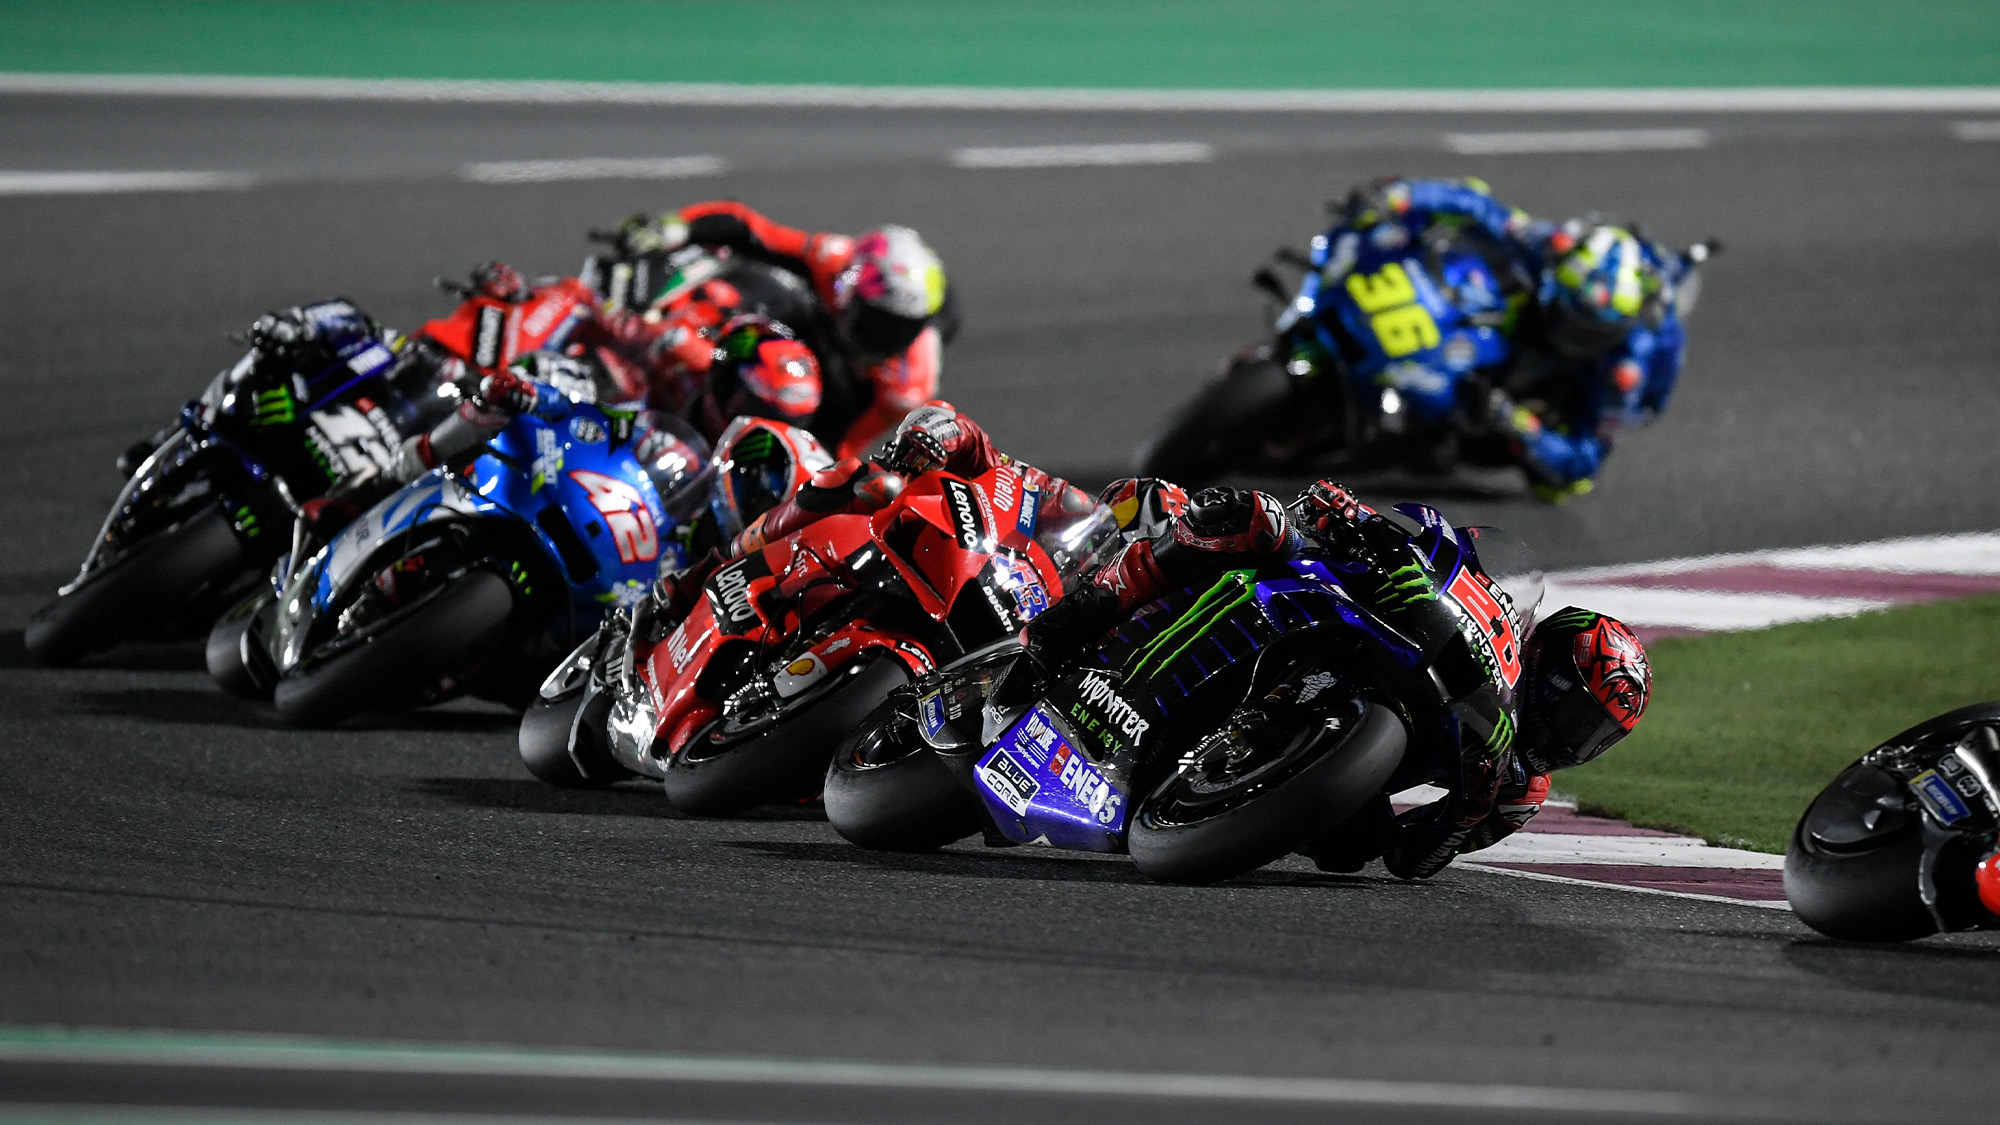 Yamaha: 2 Rest of the grid: 0 — Doha MotoGP insight